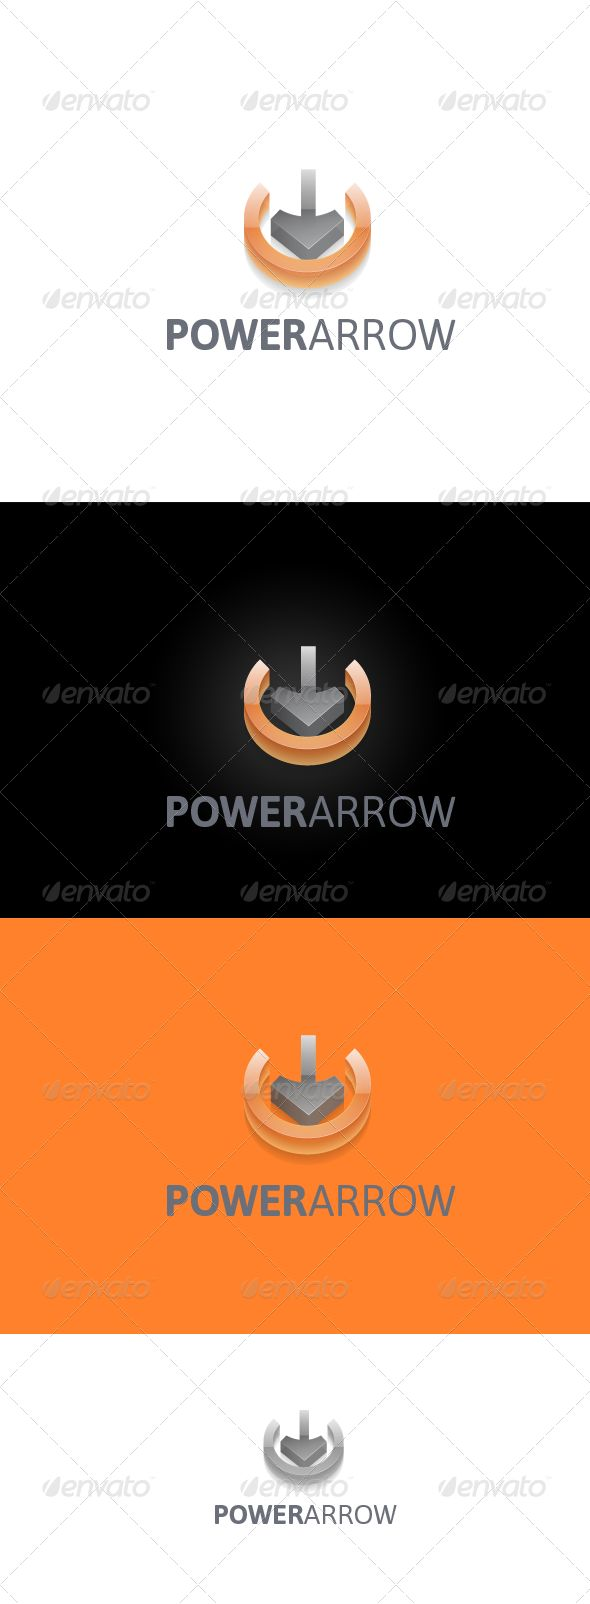 PowerArrow — Photoshop PSD #contact #network • Available here → https://graphicriver.net/item/powerarrow/2403672?ref=pxcr